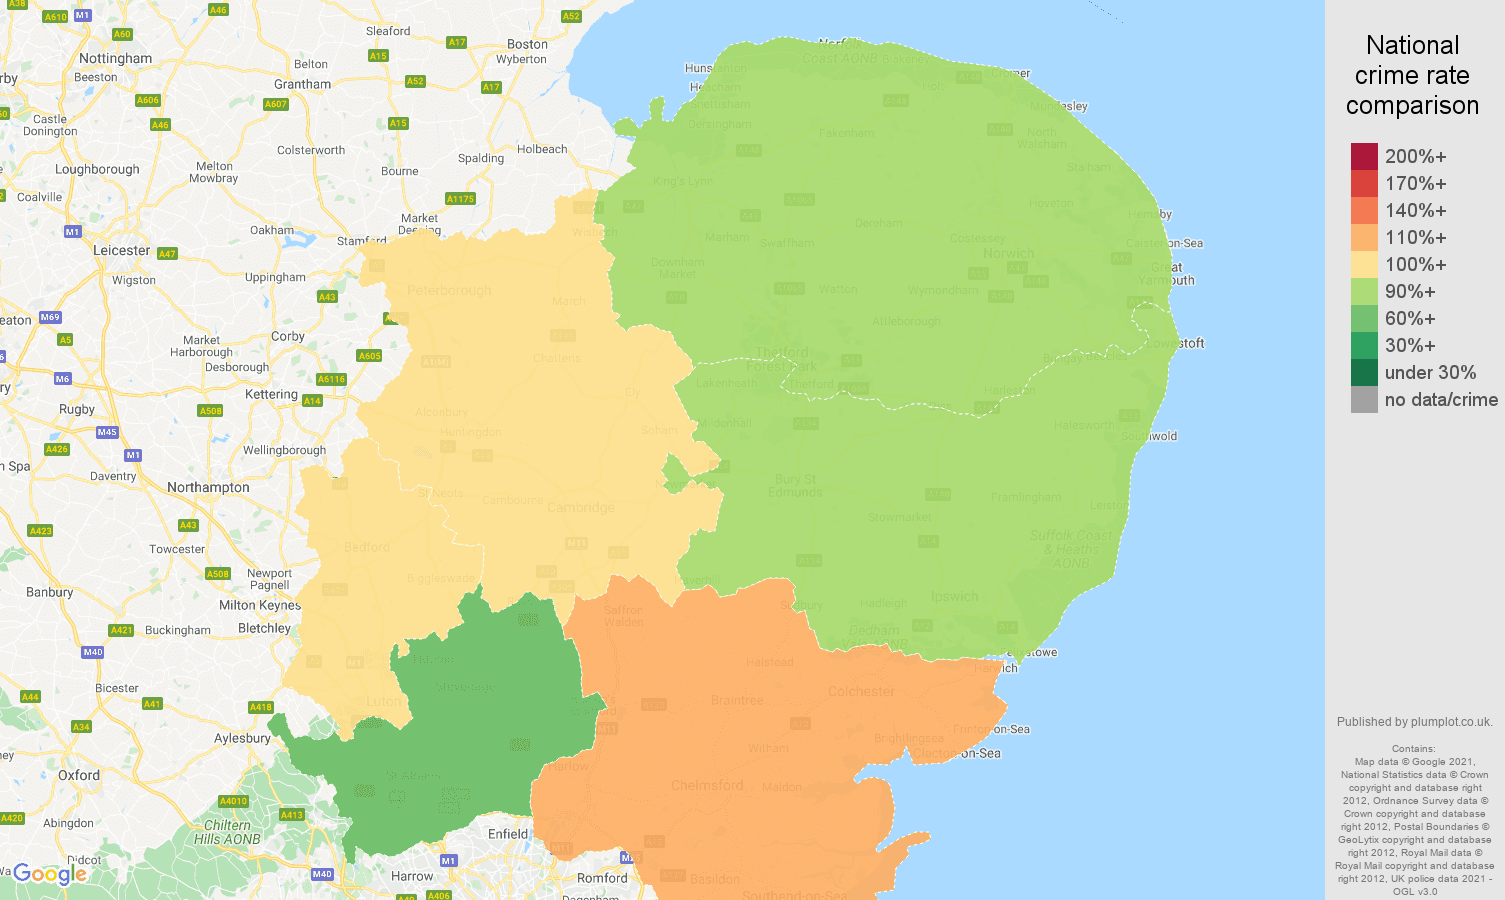 East of England criminal damage and arson crime rate comparison map